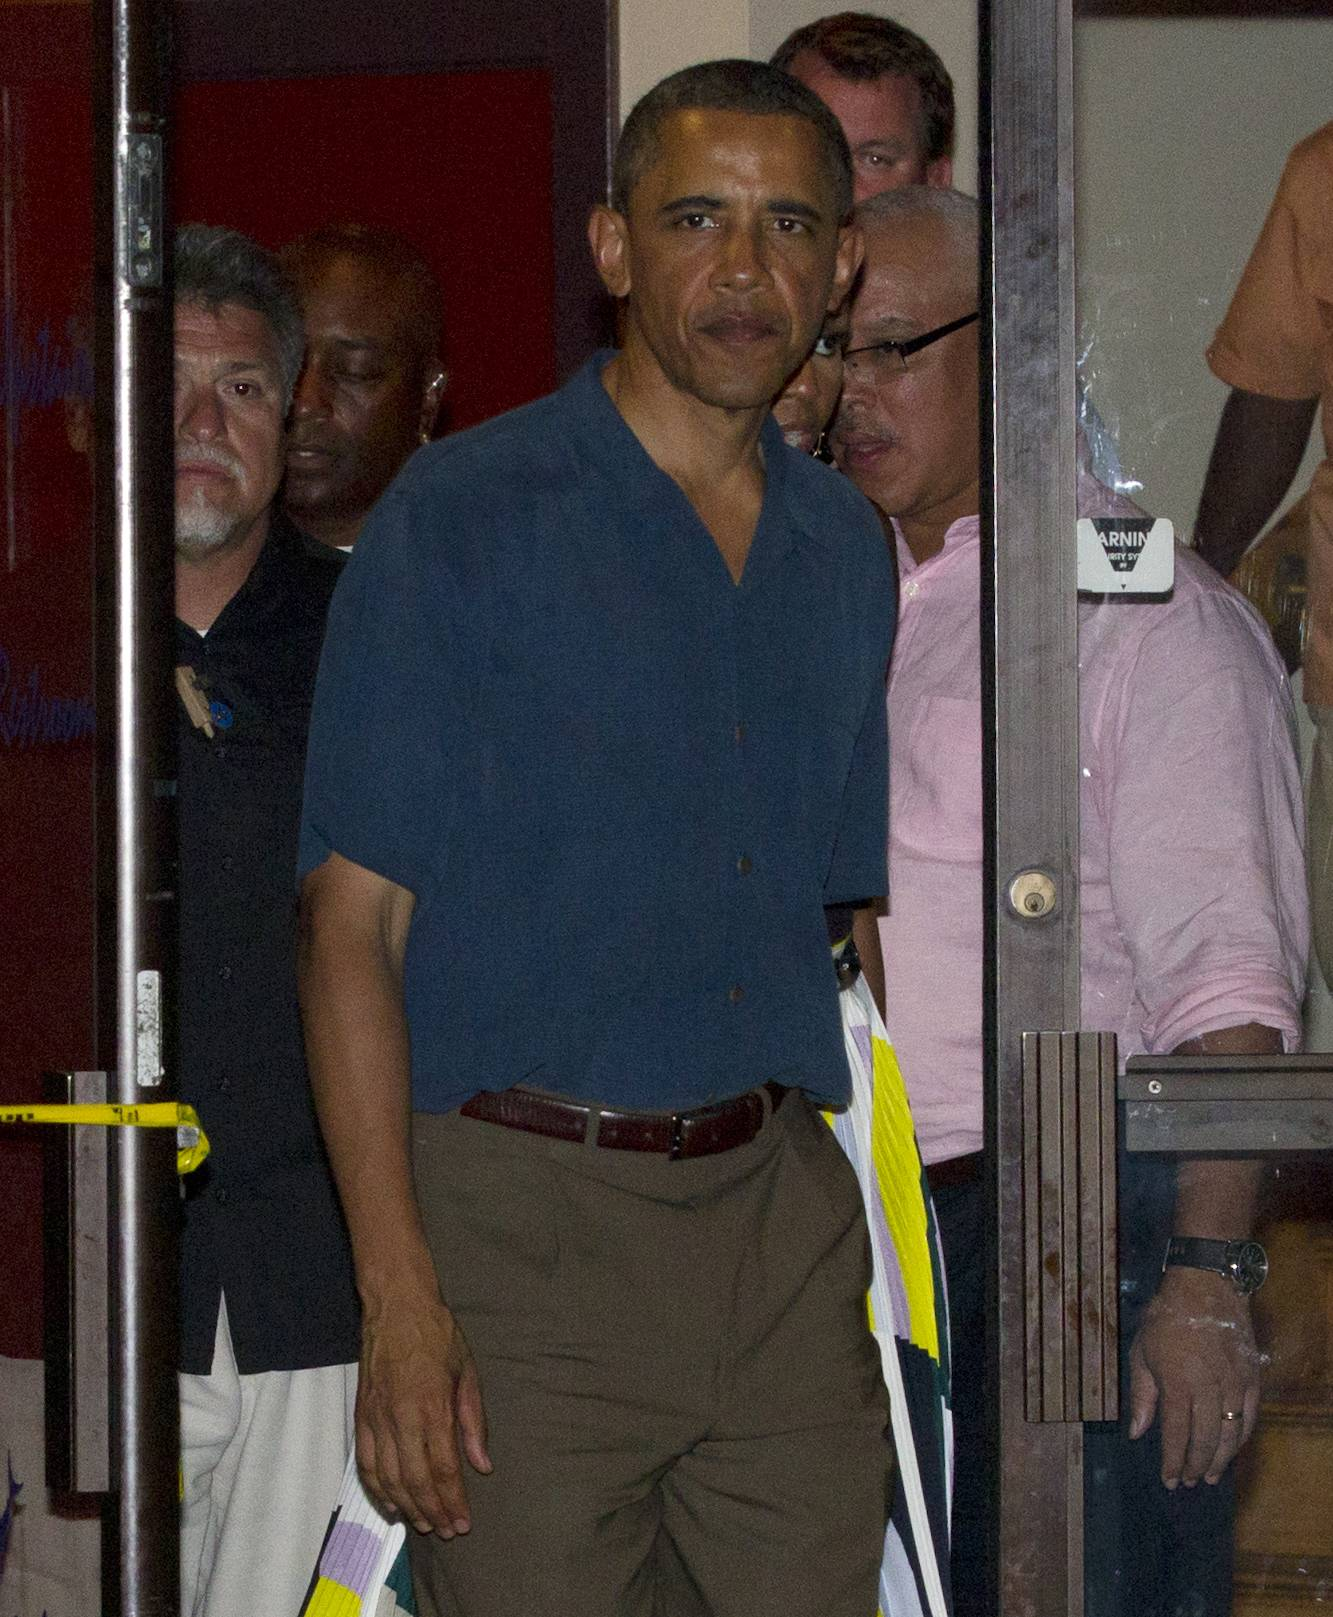 President Barack Obama leaves Nancy's Restaurant on Sunday in Oak Bluffs on Martha's Vineyard, Mass., during a family vacation. Obama was briefed throughout the day on the latest developments in Libya.